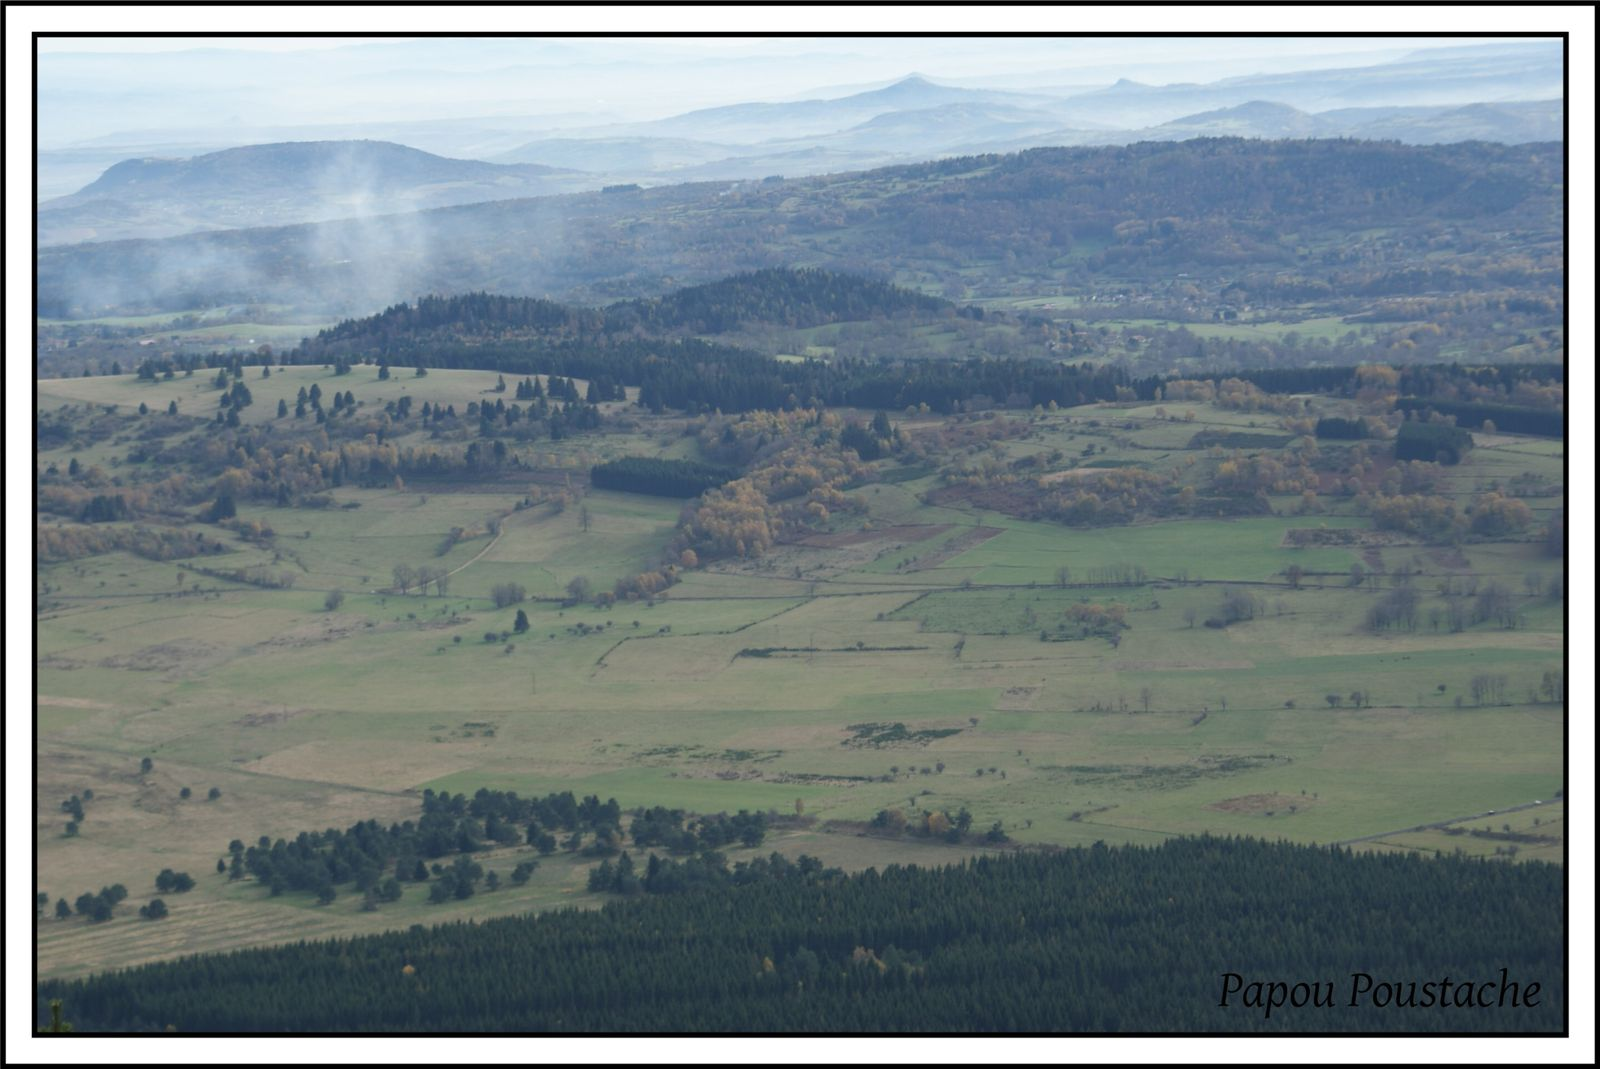 Welcome to Auvergne:Le puy de Dome en version anglaise